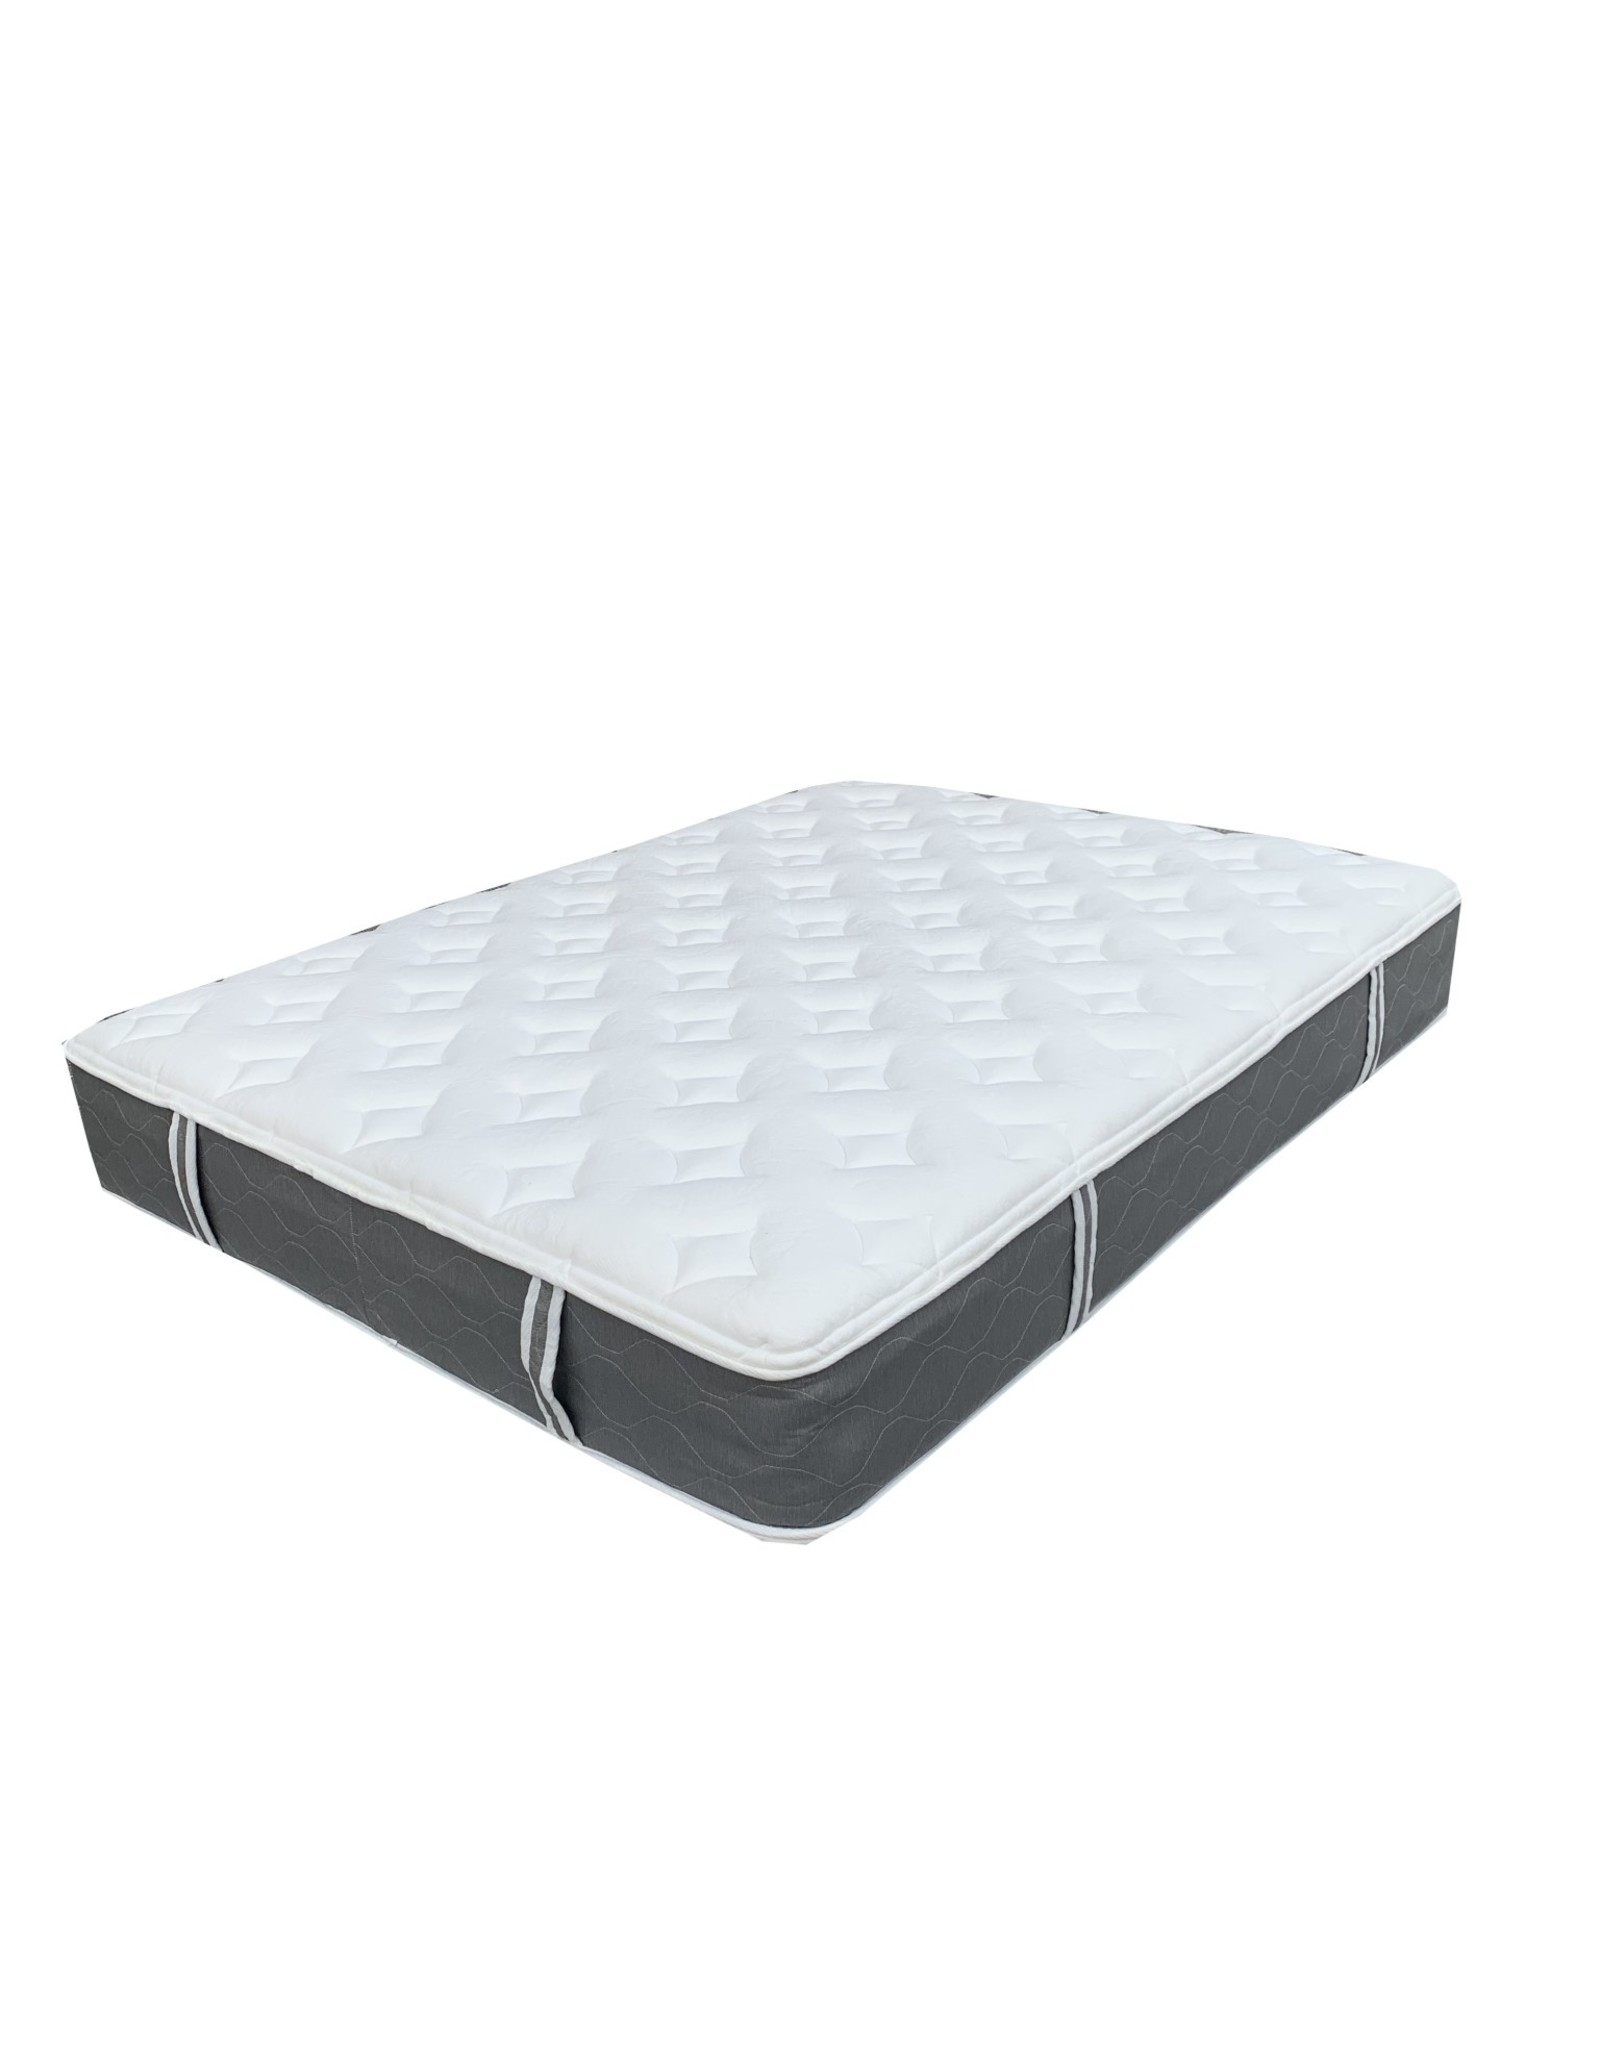 Magic Comfort Mattress